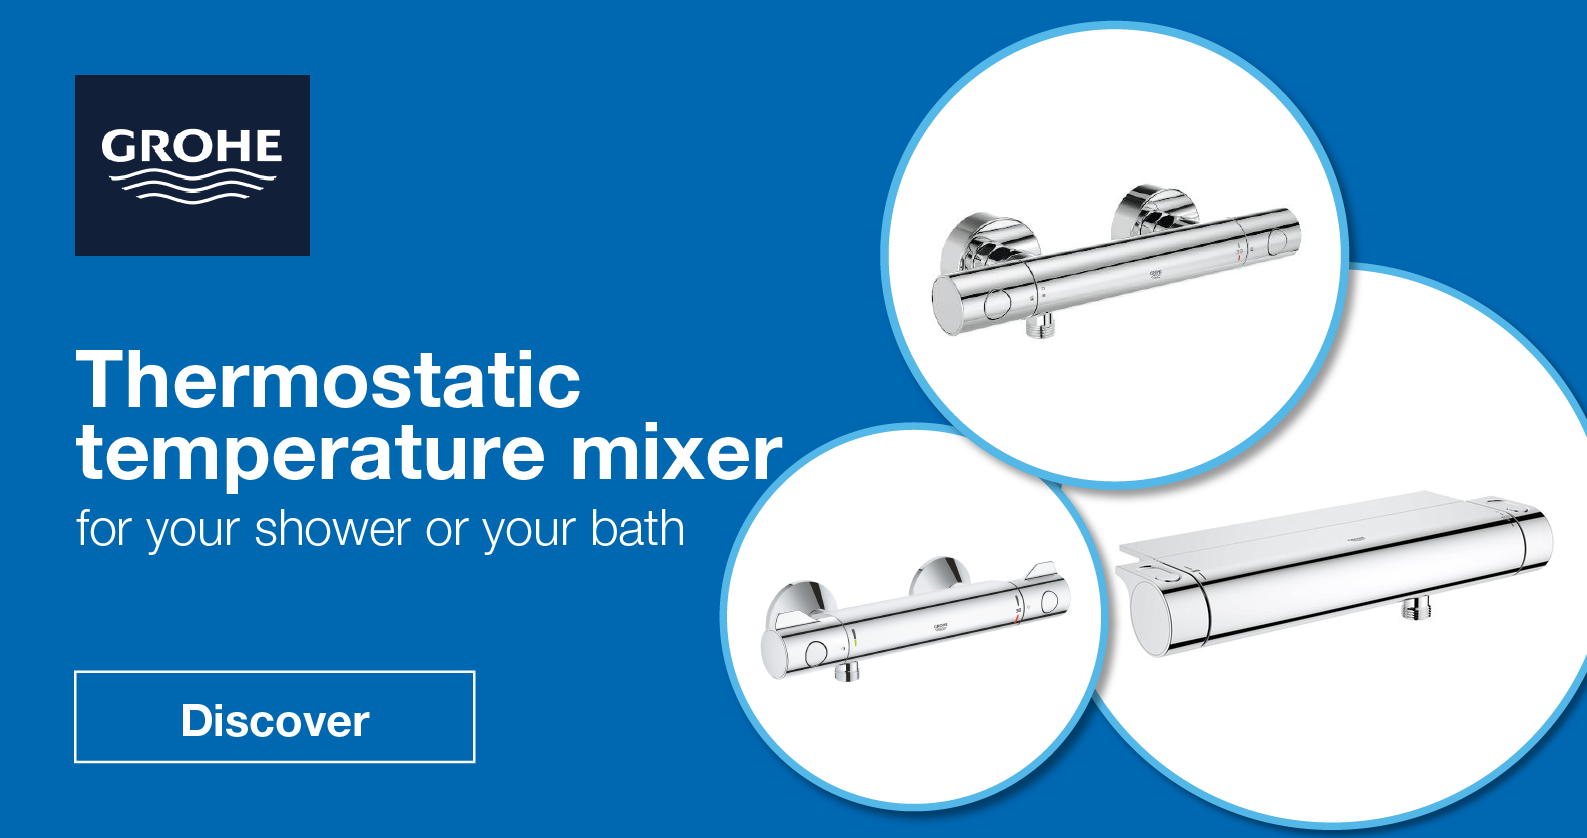 GROHE Thermostats for Shower and Bathtub at xTWOstore